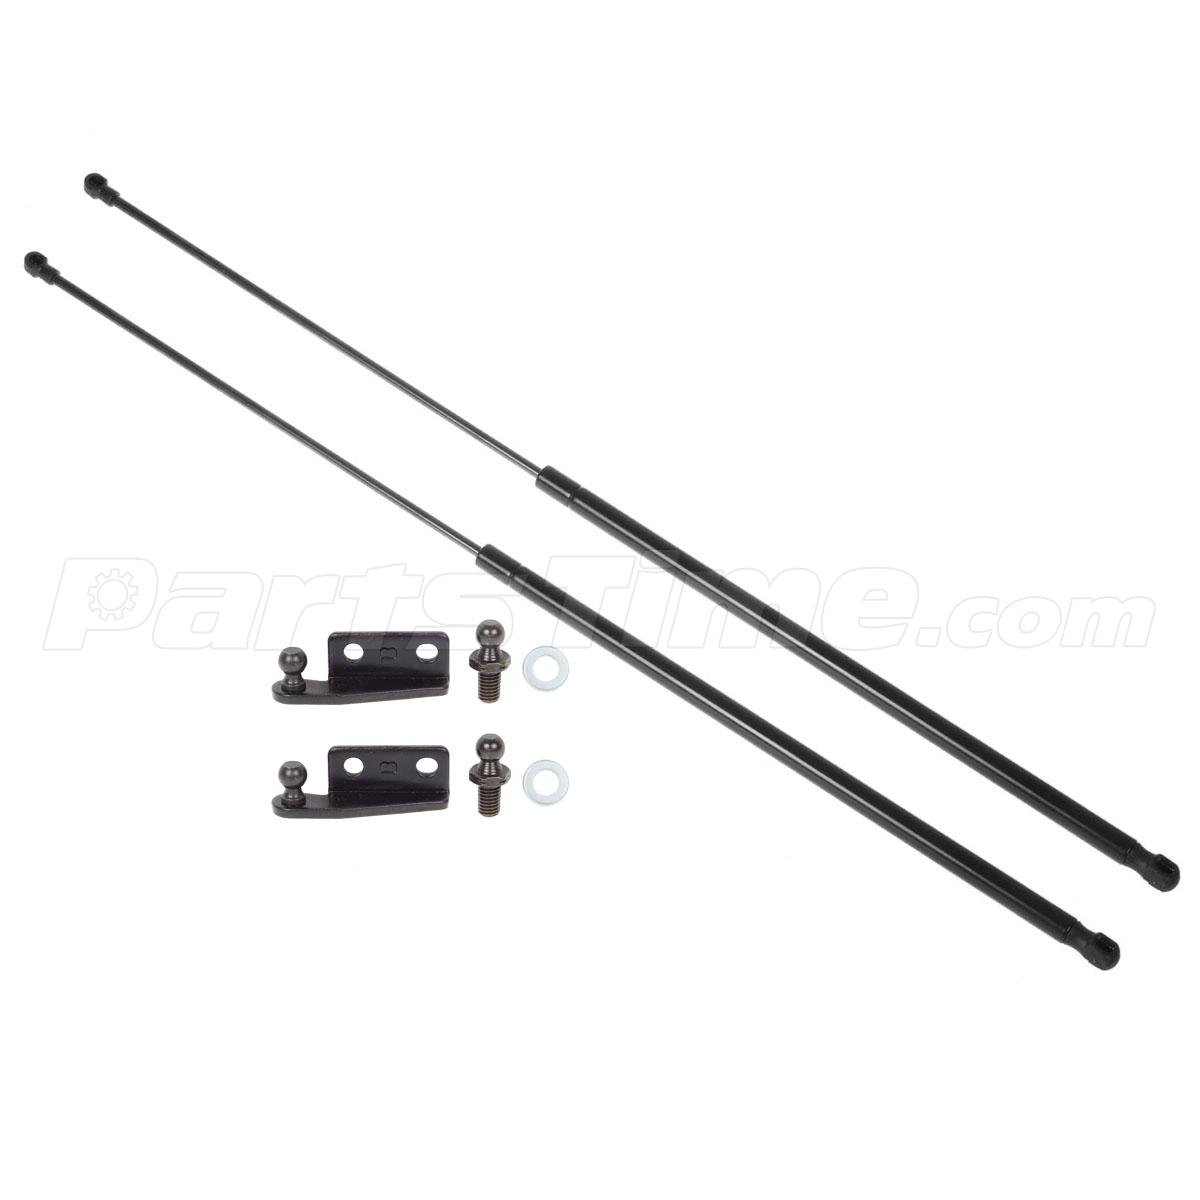 2 Rear Hatch Tailgate Gas Charged Lift Support For 95 99